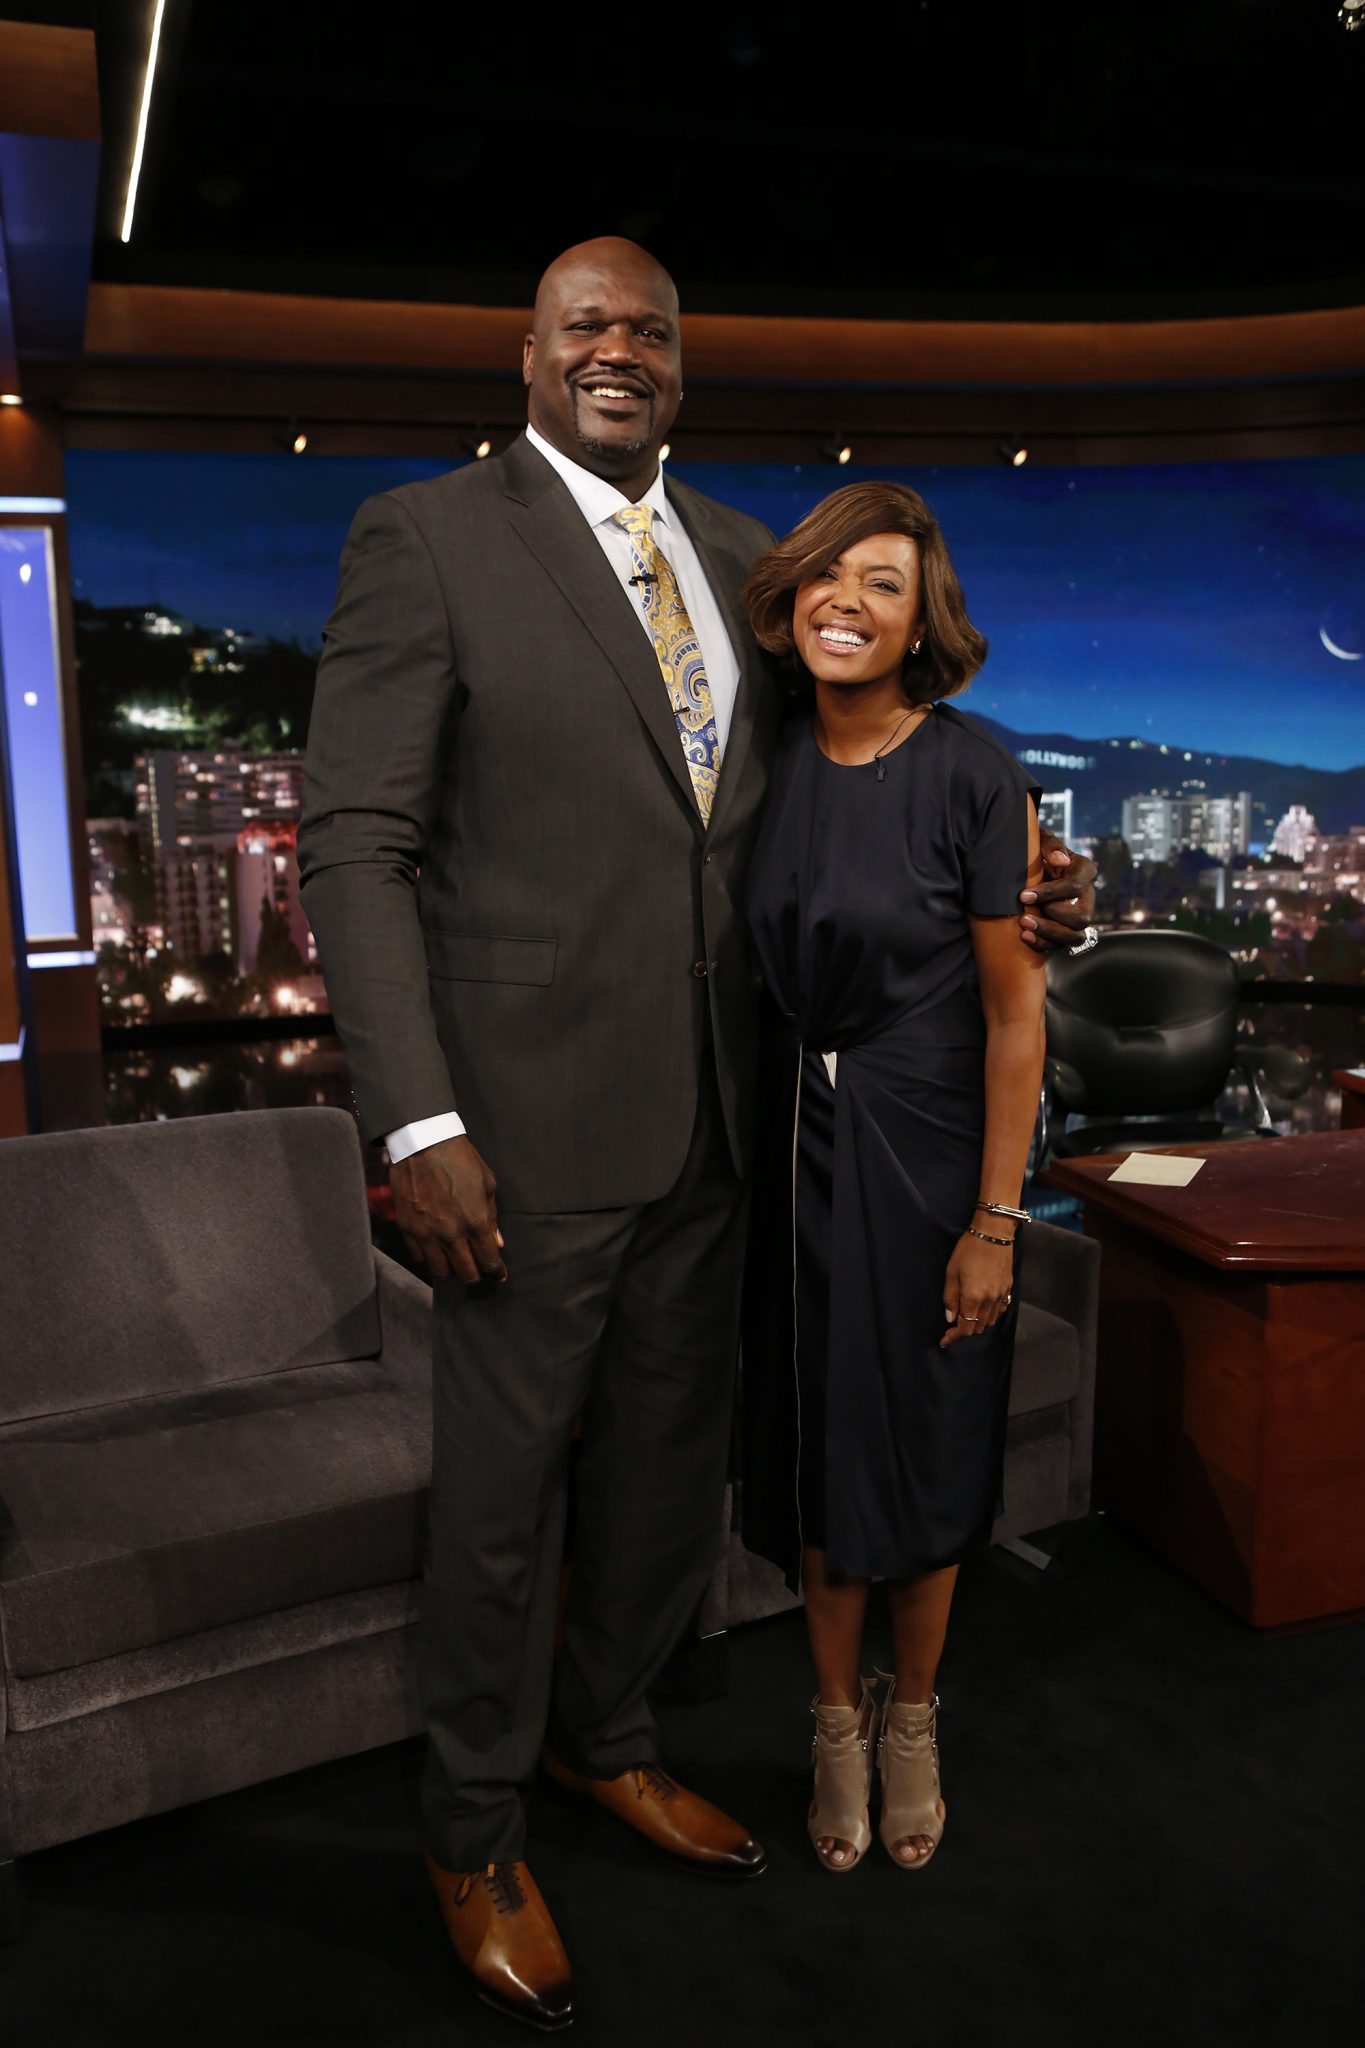 In Case You Missed It: Shaq Hosts Jimmy Kimmel Live